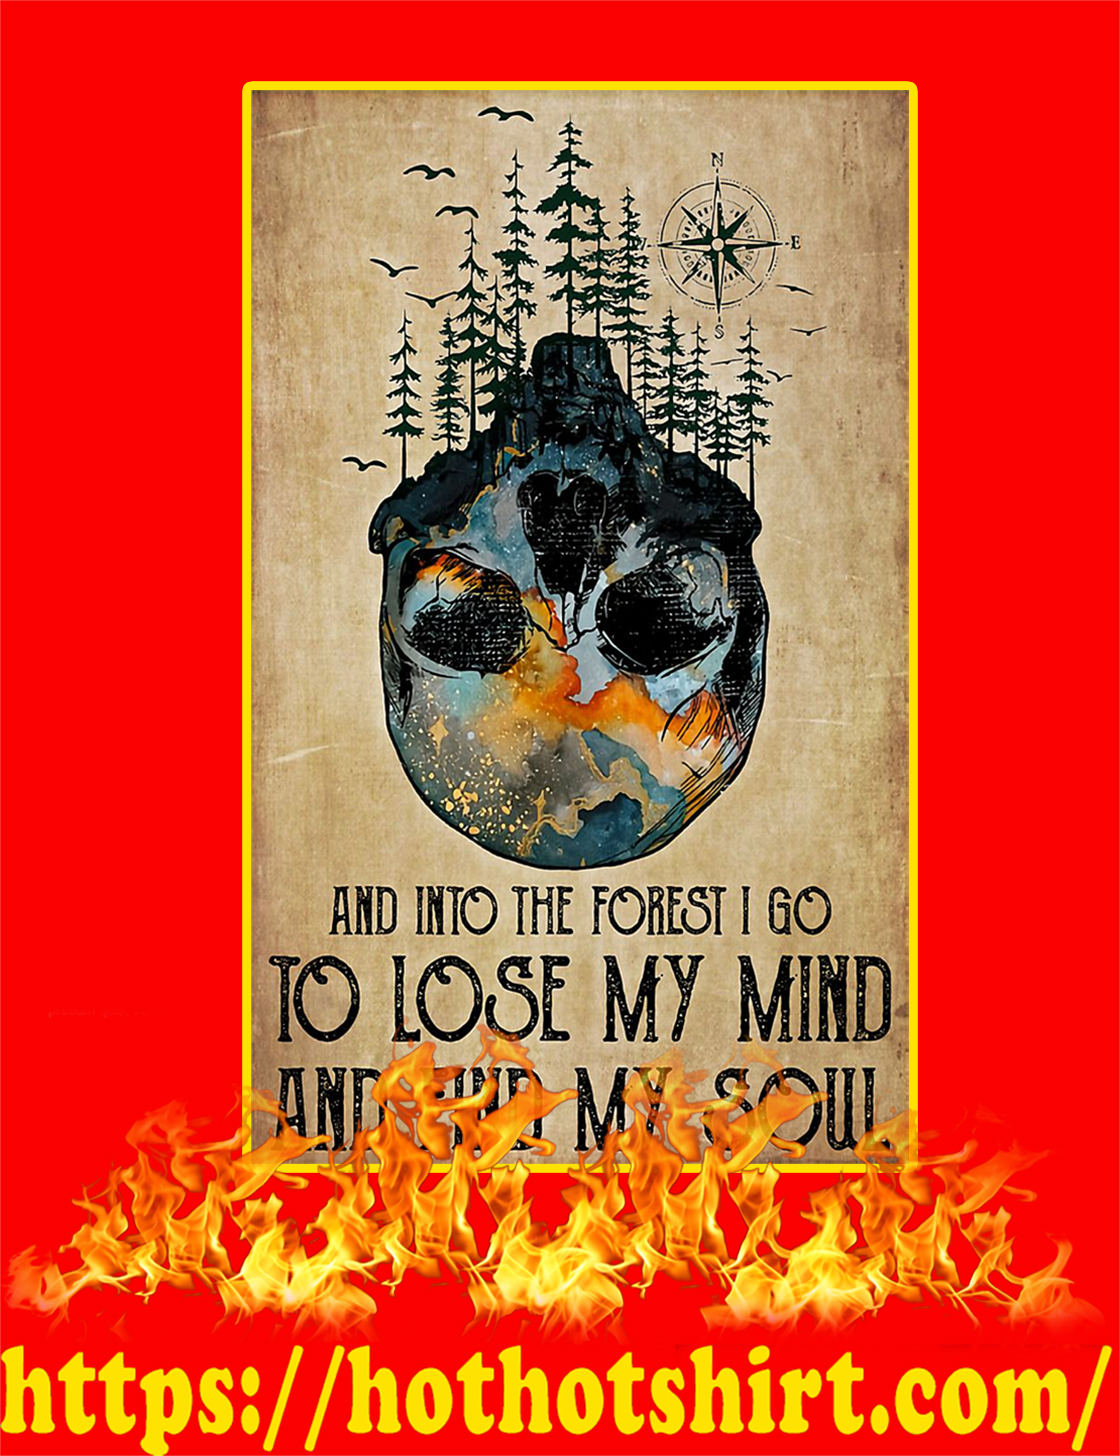 And Into The Forest I Go To Lose My Mind And Find My Soul Poster - A4